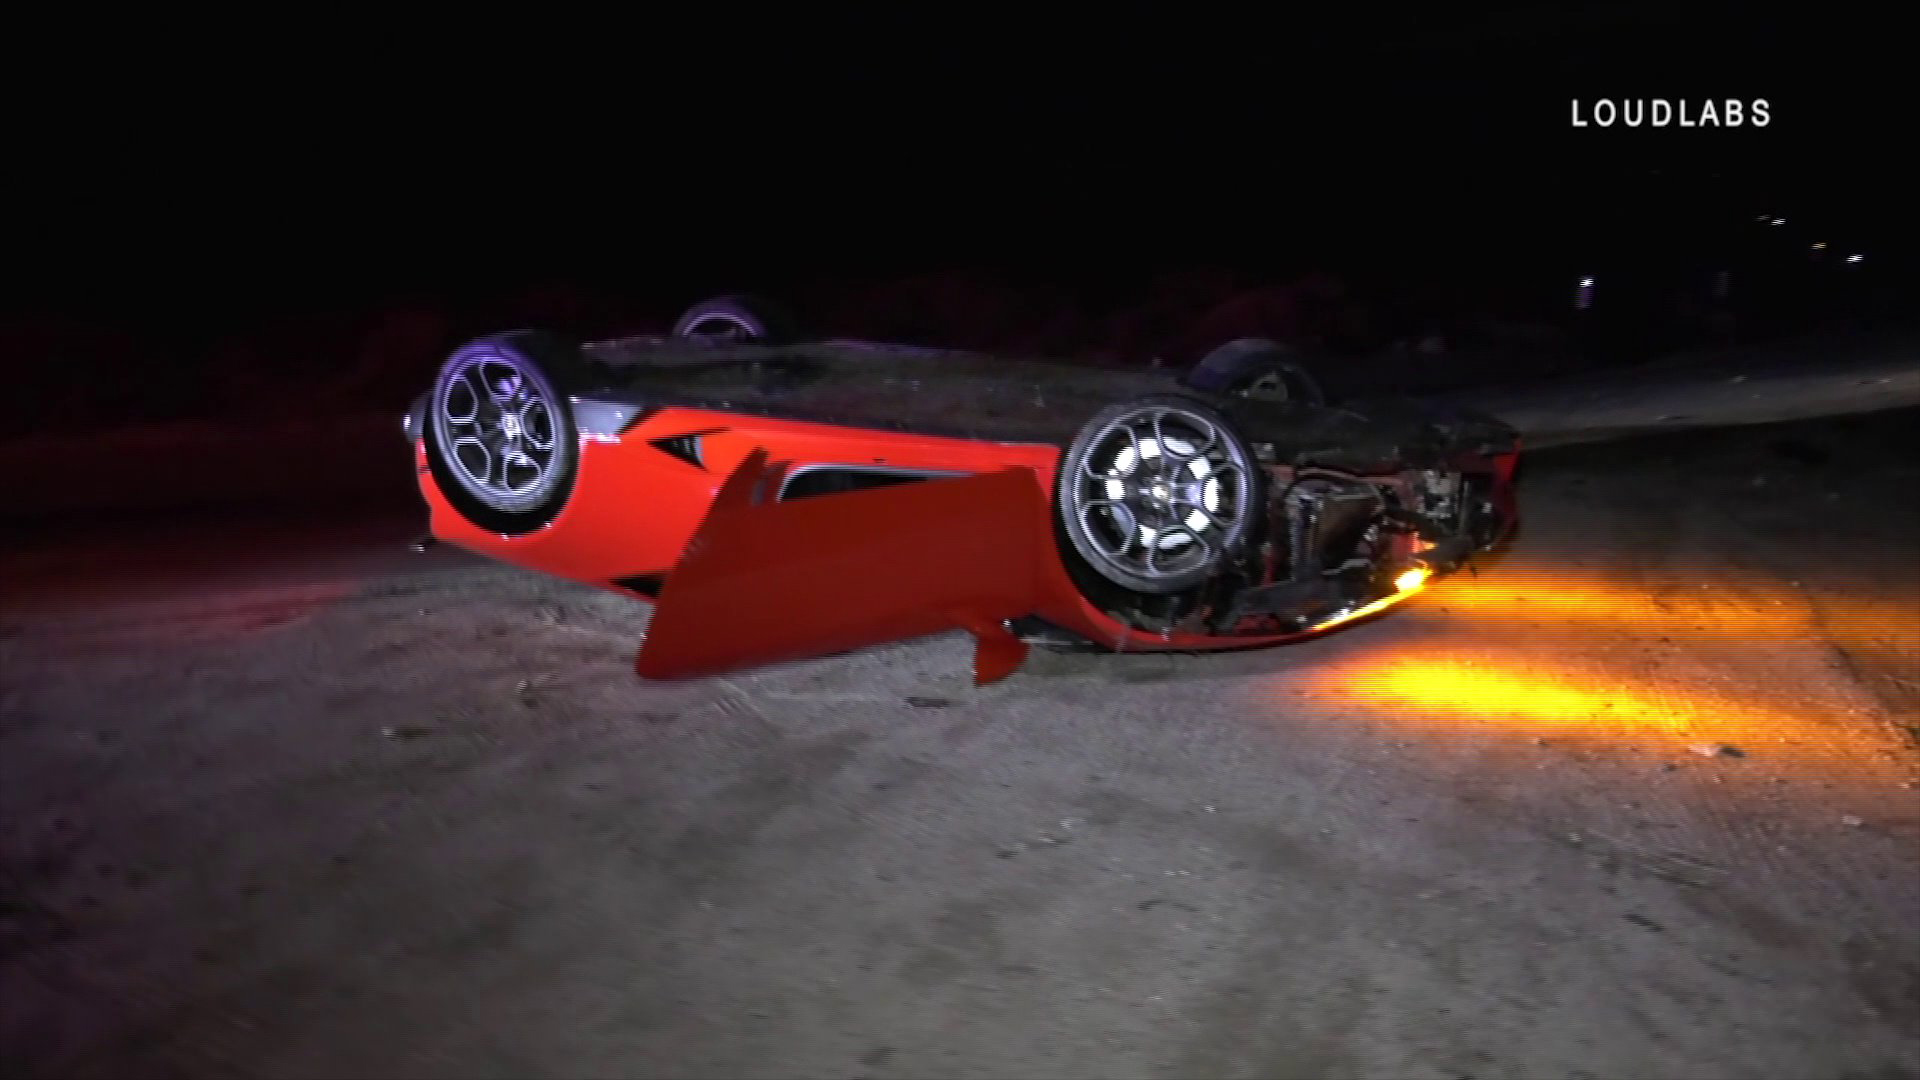 An abandoned Lamborghini was found after it landed upside down on Angeles Crest Highway on Dec. 11, 2019. (Credit: Loudlabs)